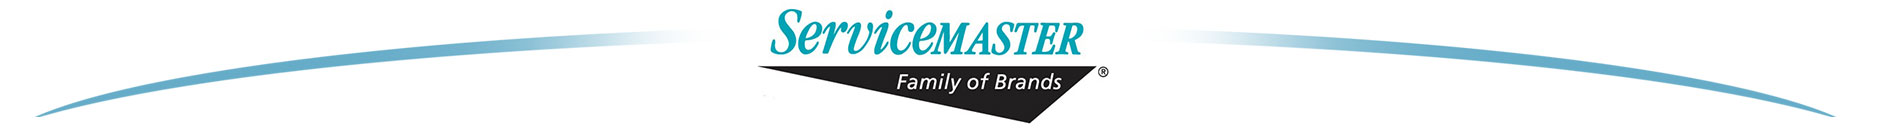 ServiceMaster Family of Brands